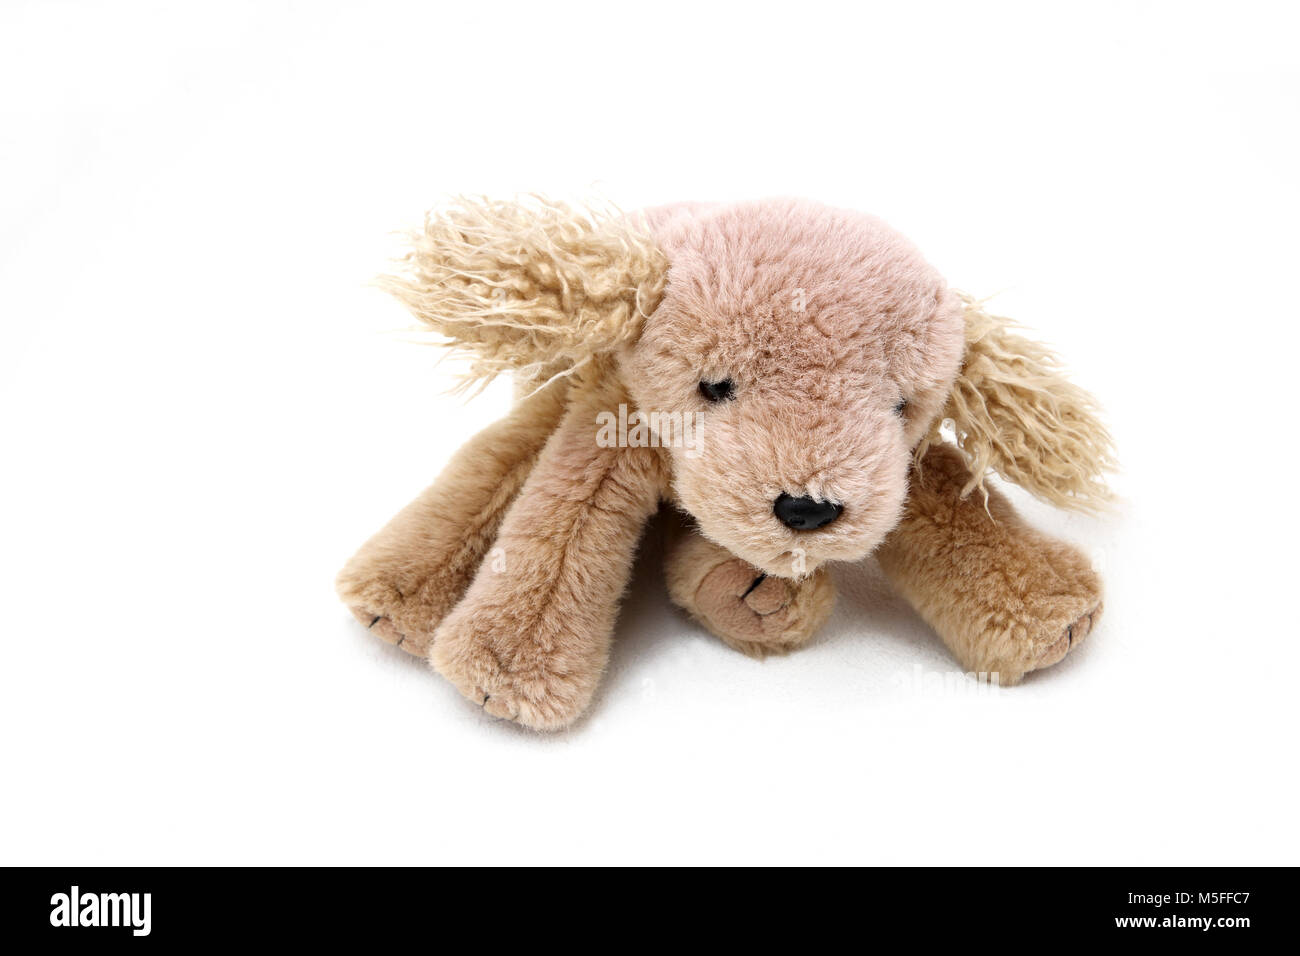 TY Beanie Baby Dog - Stock Image